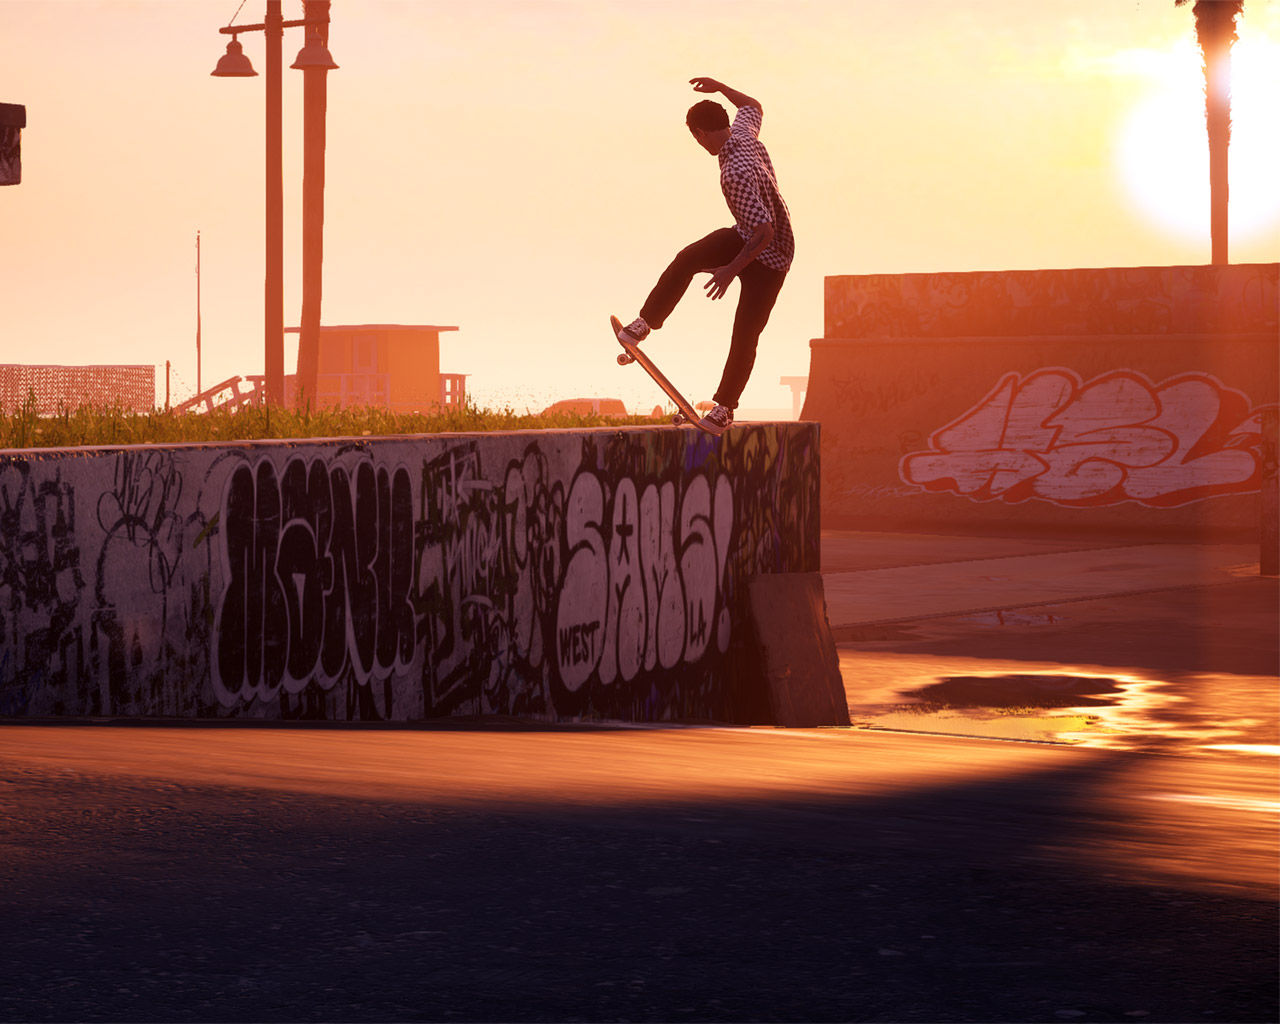 Free Tony Hawk's Pro Skater 1 + 2 Wallpaper in 1280x1024